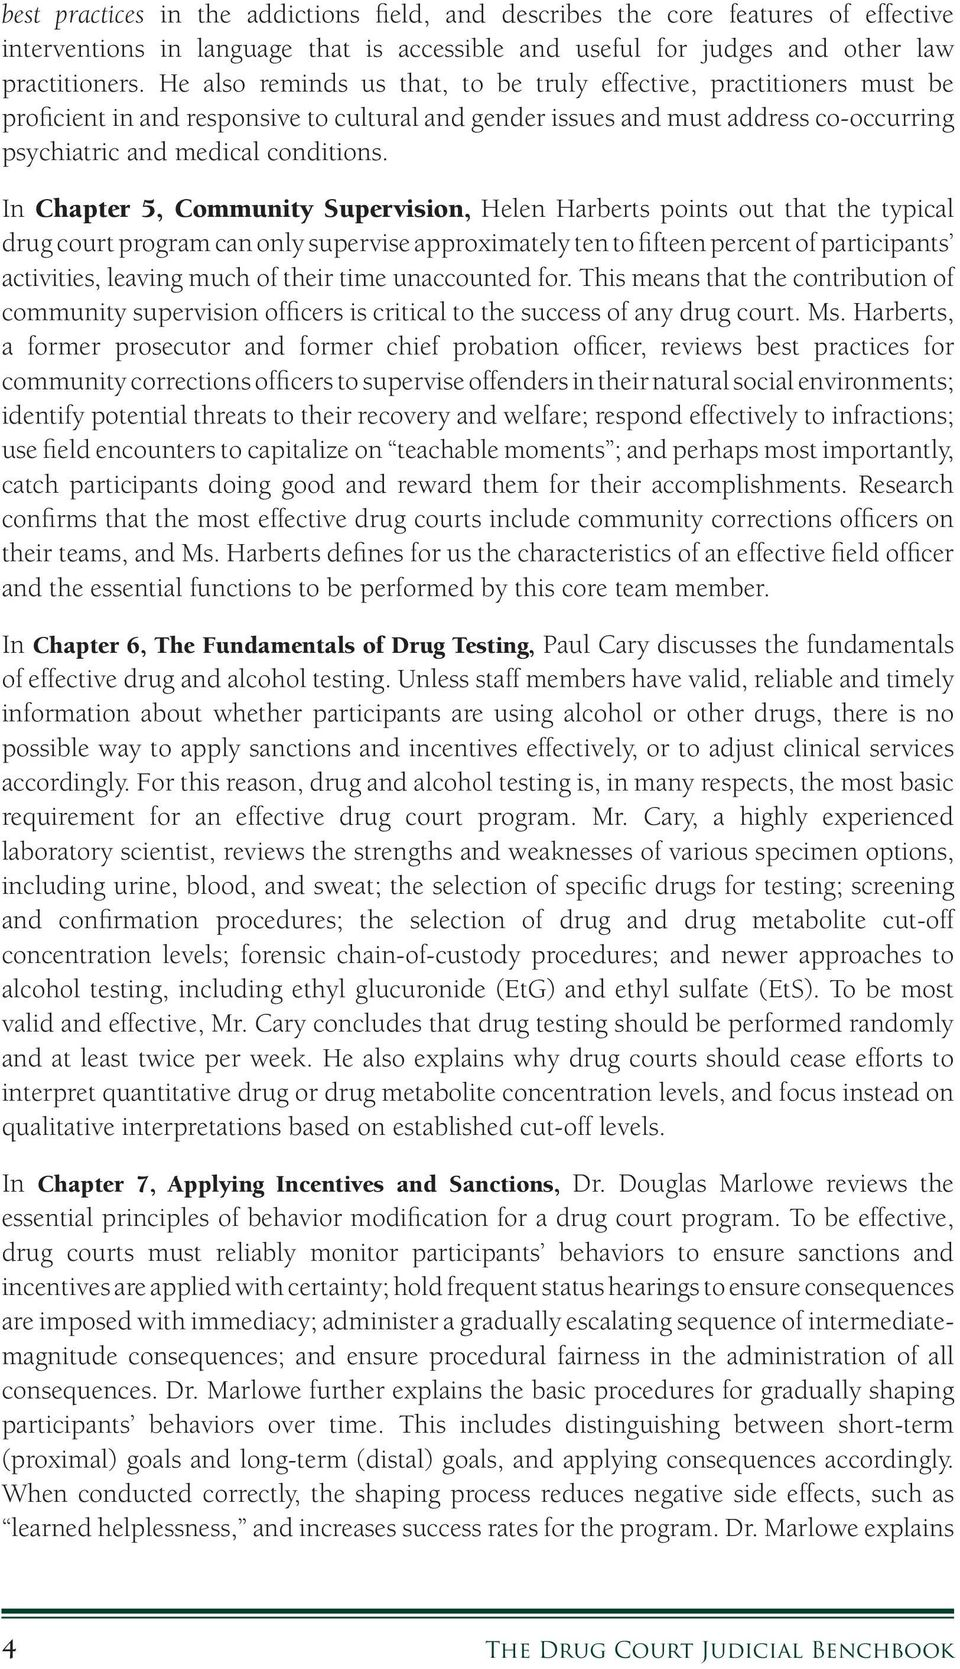 In Chapter 5, Community Supervision, Helen Harberts points out that the typical drug court program can only supervise approximately ten to fifteen percent of participants activities, leaving much of